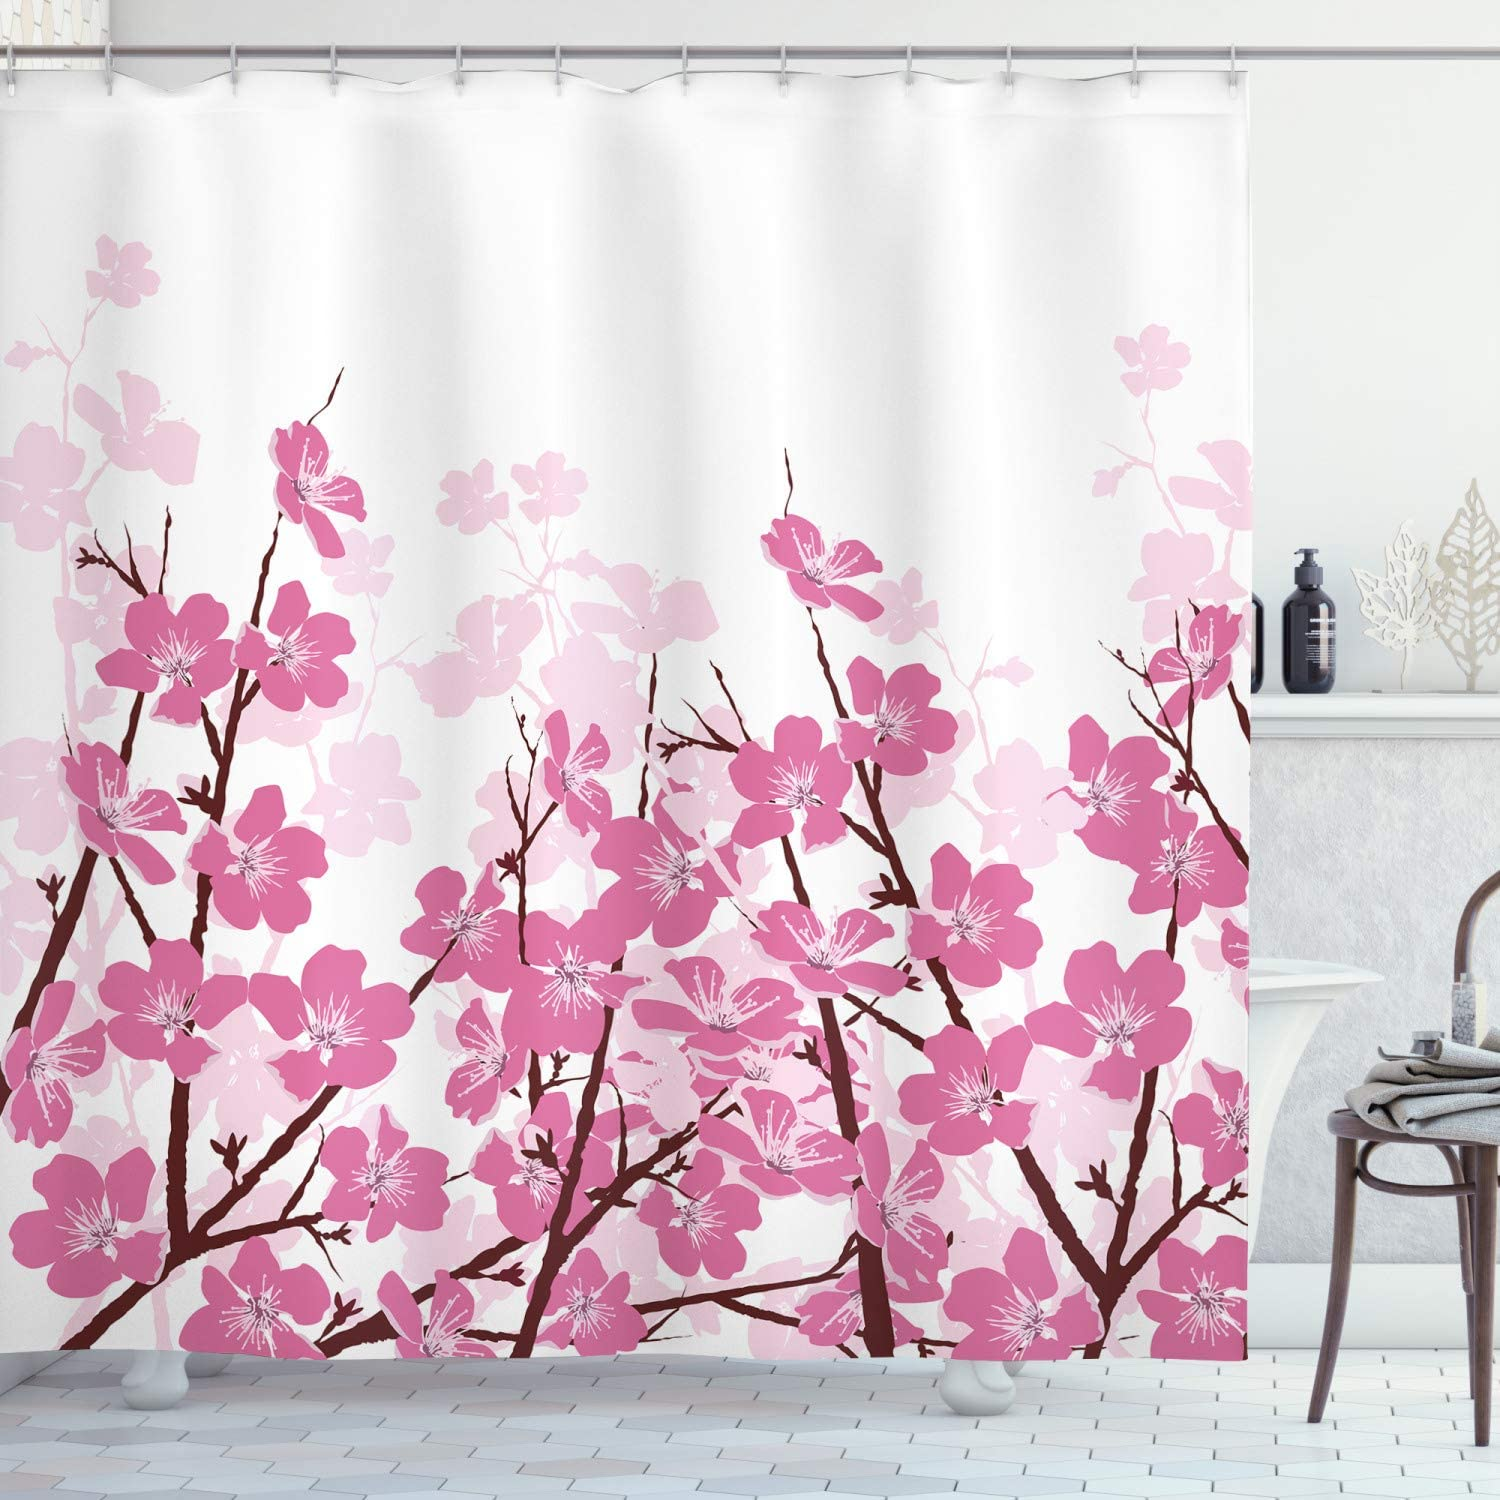 Watercolor Flowers Decorations Collection, Spring Cherry Branches